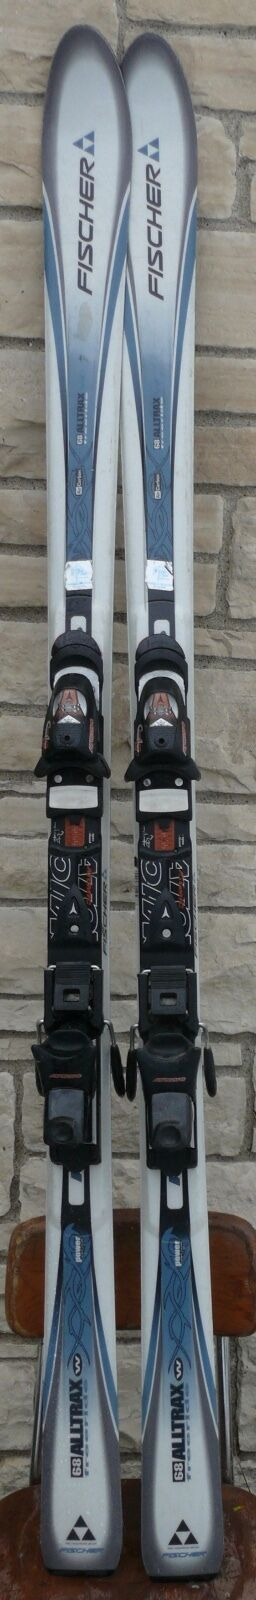 FISCHER ALLTRAX 68 FREERIDE DOWNHILL SKIS 171 LENGTH ATOMIC 3.10 CENTRO 3.10 ATOMIC BINDINGS 9e7f69